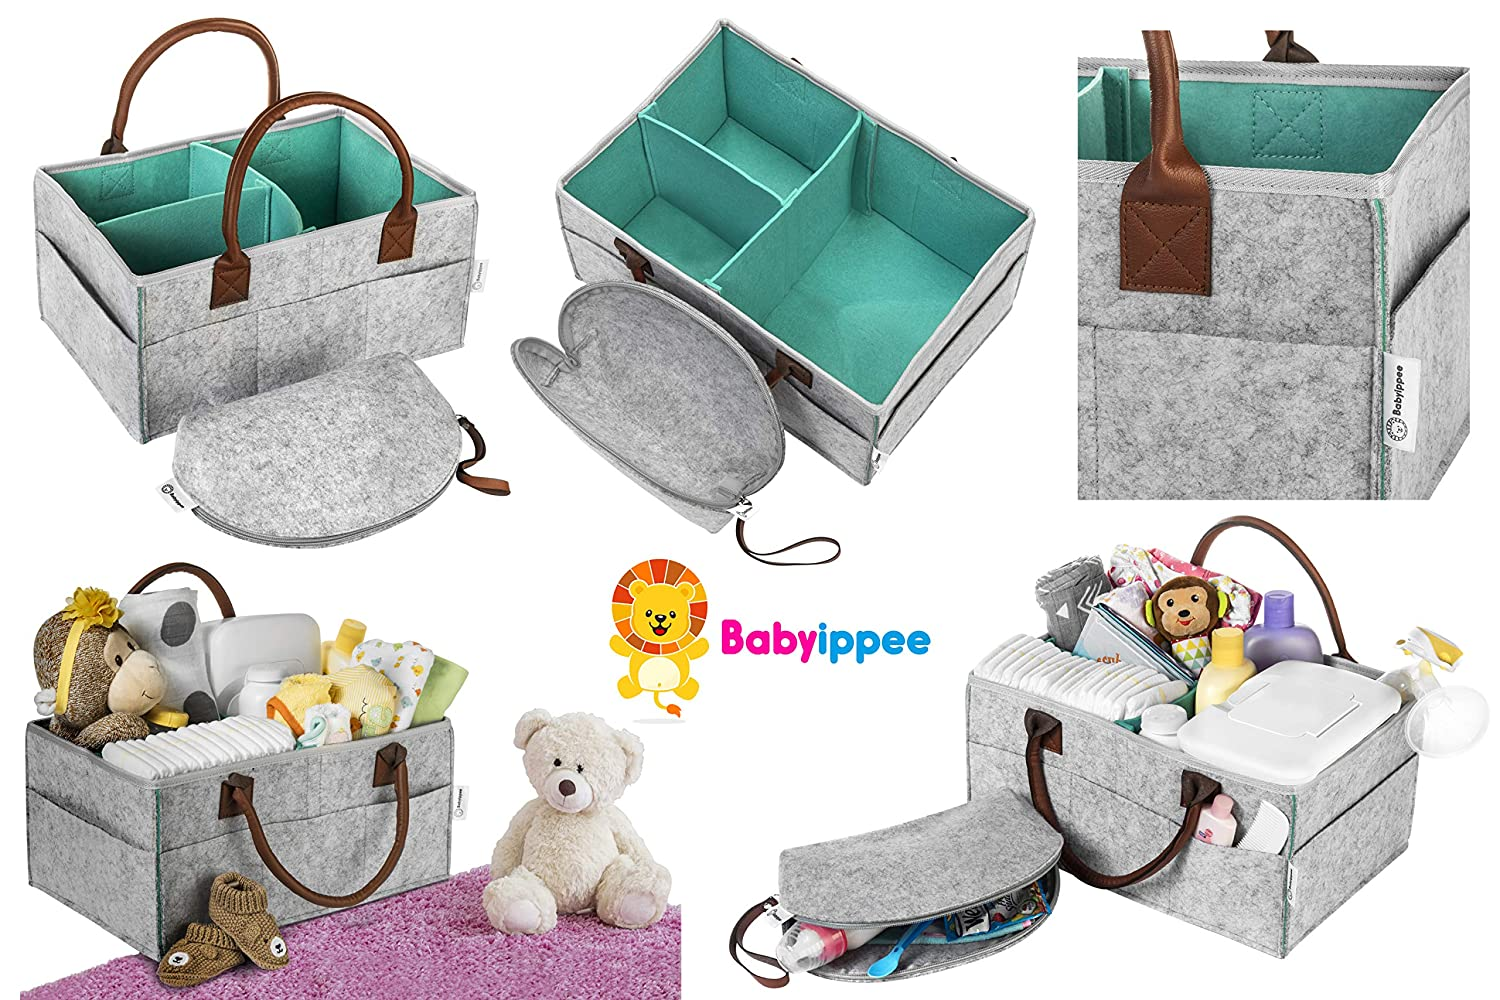 Car Travel Organizers 2 Felt Dividers with Portable Zip Pouch Foldable Baby Diaper Caddy Organizer by BABYIPPEE Newborn Nursery Room Storage Bin Tote Bag for Boys and Girls Changing Table